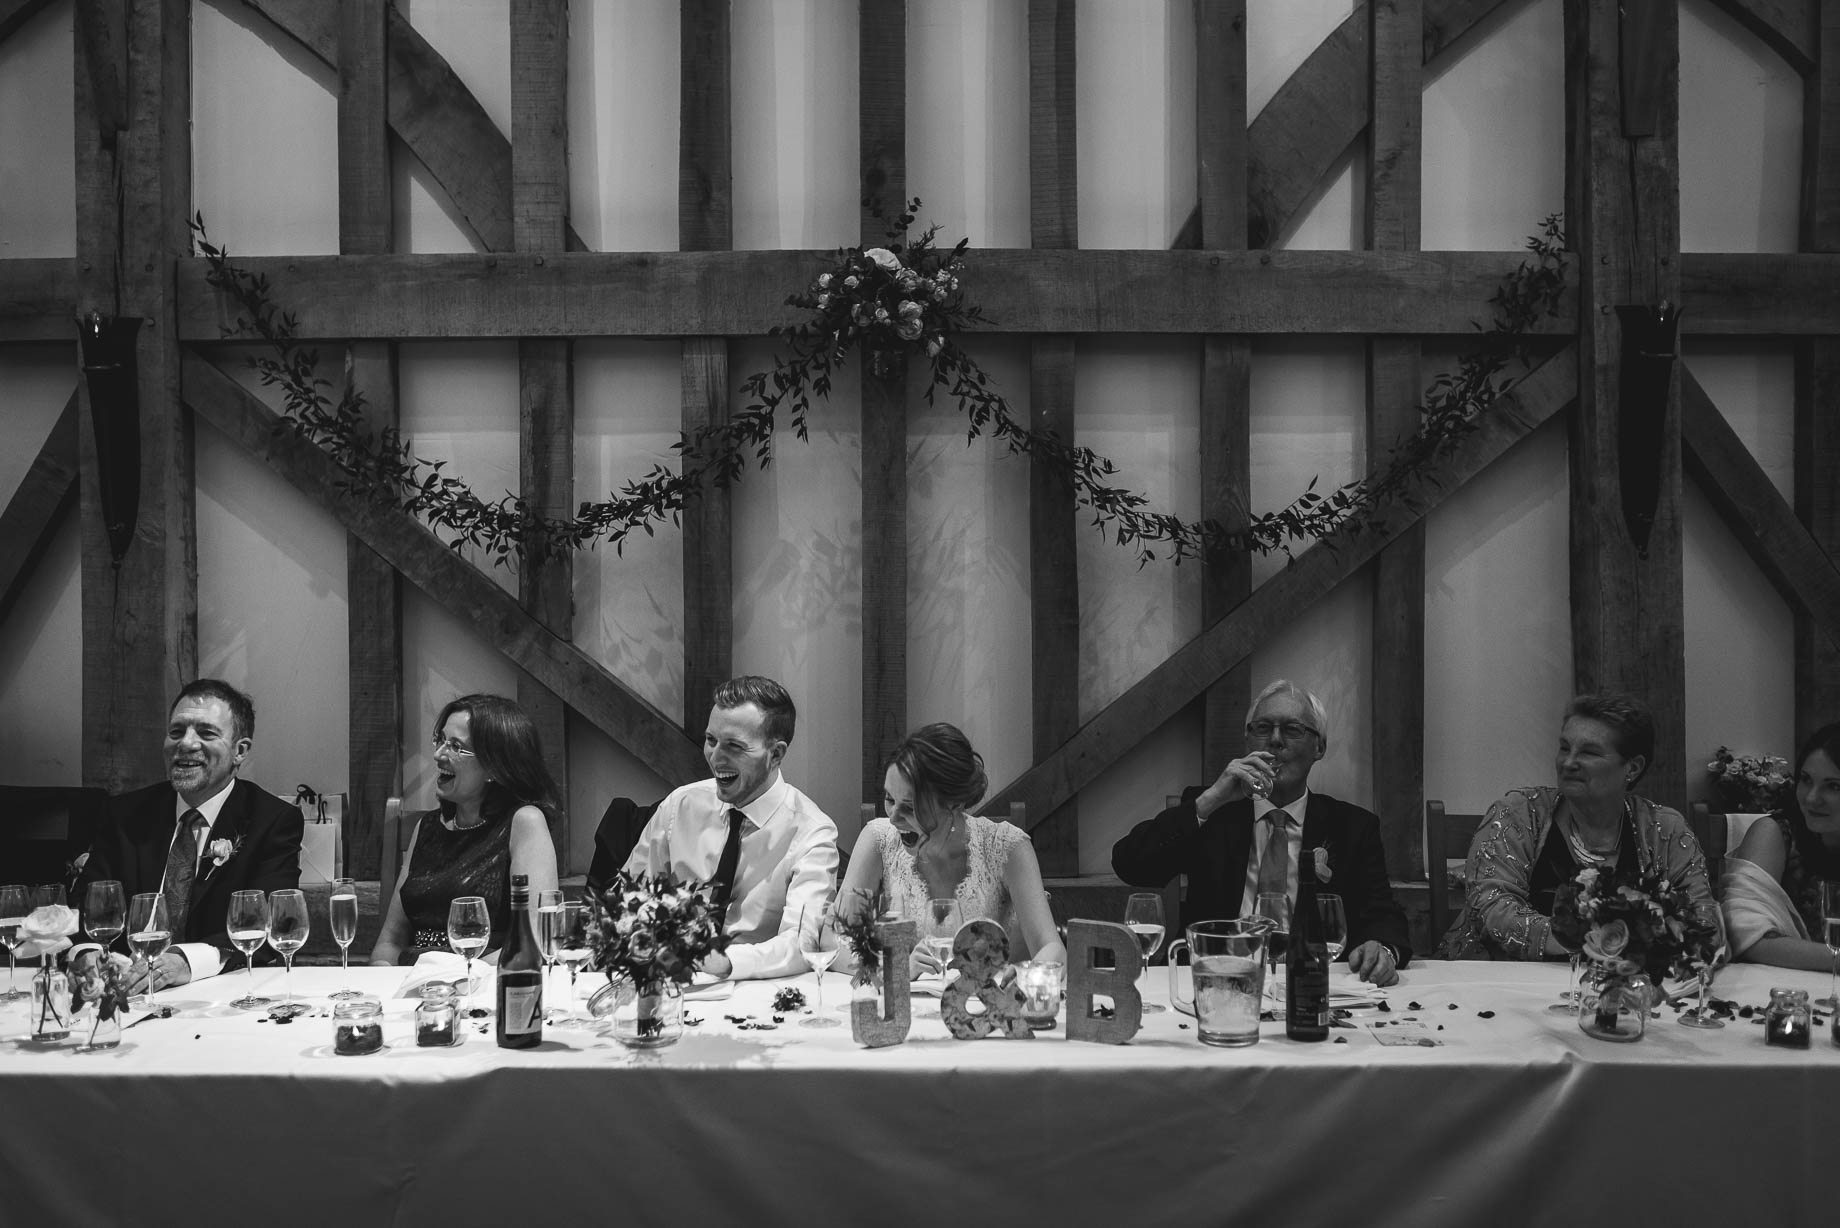 Surrey Wedding Photography by Guy Collier - Becca and James (140 of 145)